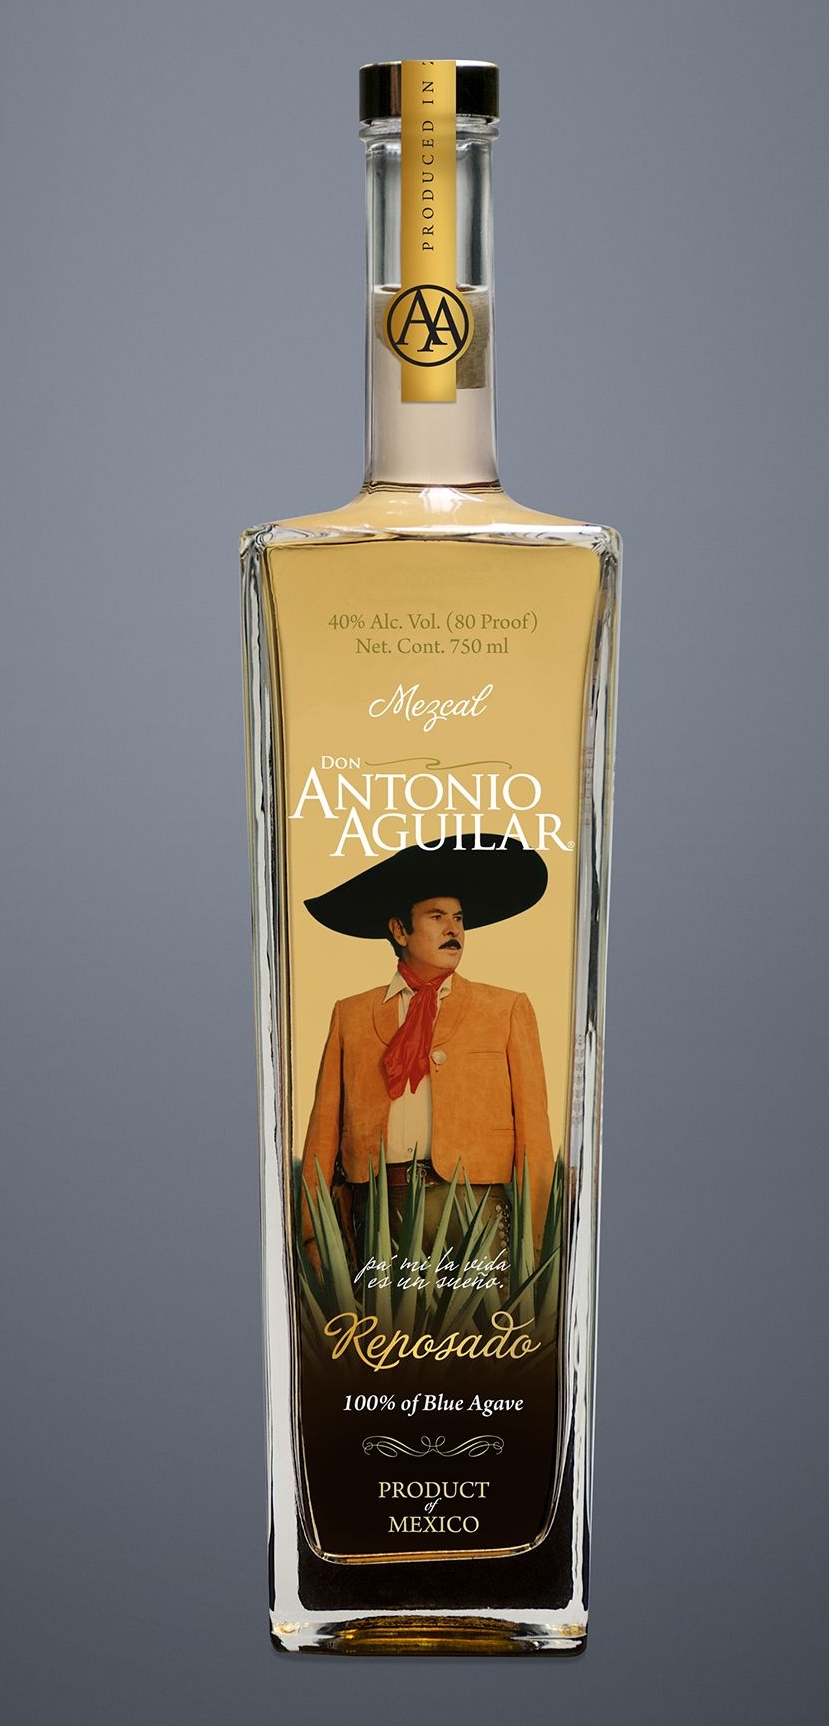 "MEZCAL ANTONIO AGILAR  is made with the same type of agave that Tequila is made with, tequilana Weber also known as blue agave. However, it can not be call Tequila because it is produced outside the restricted area protecting the Tequila denomination. Antonio Aguilar is a Mezcal from Zacatecas.  ""El Charro de México"""